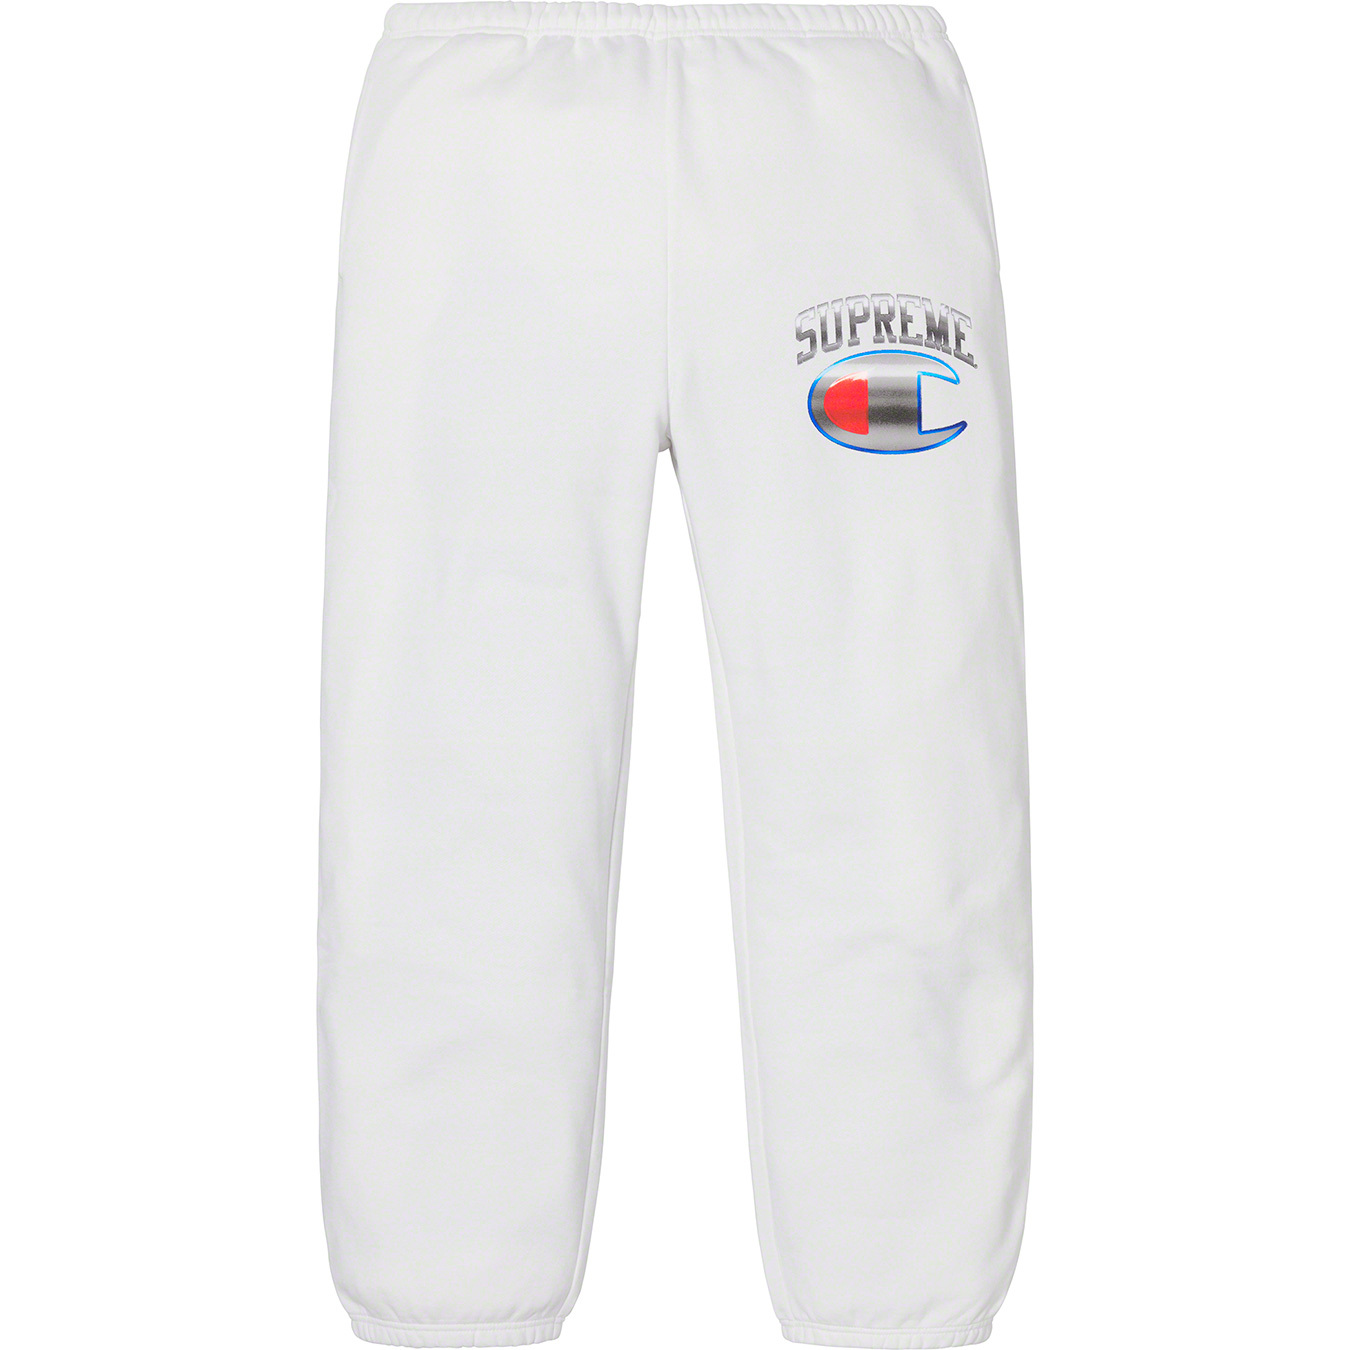 supreme-champion-chrome-sweatpant-19ss